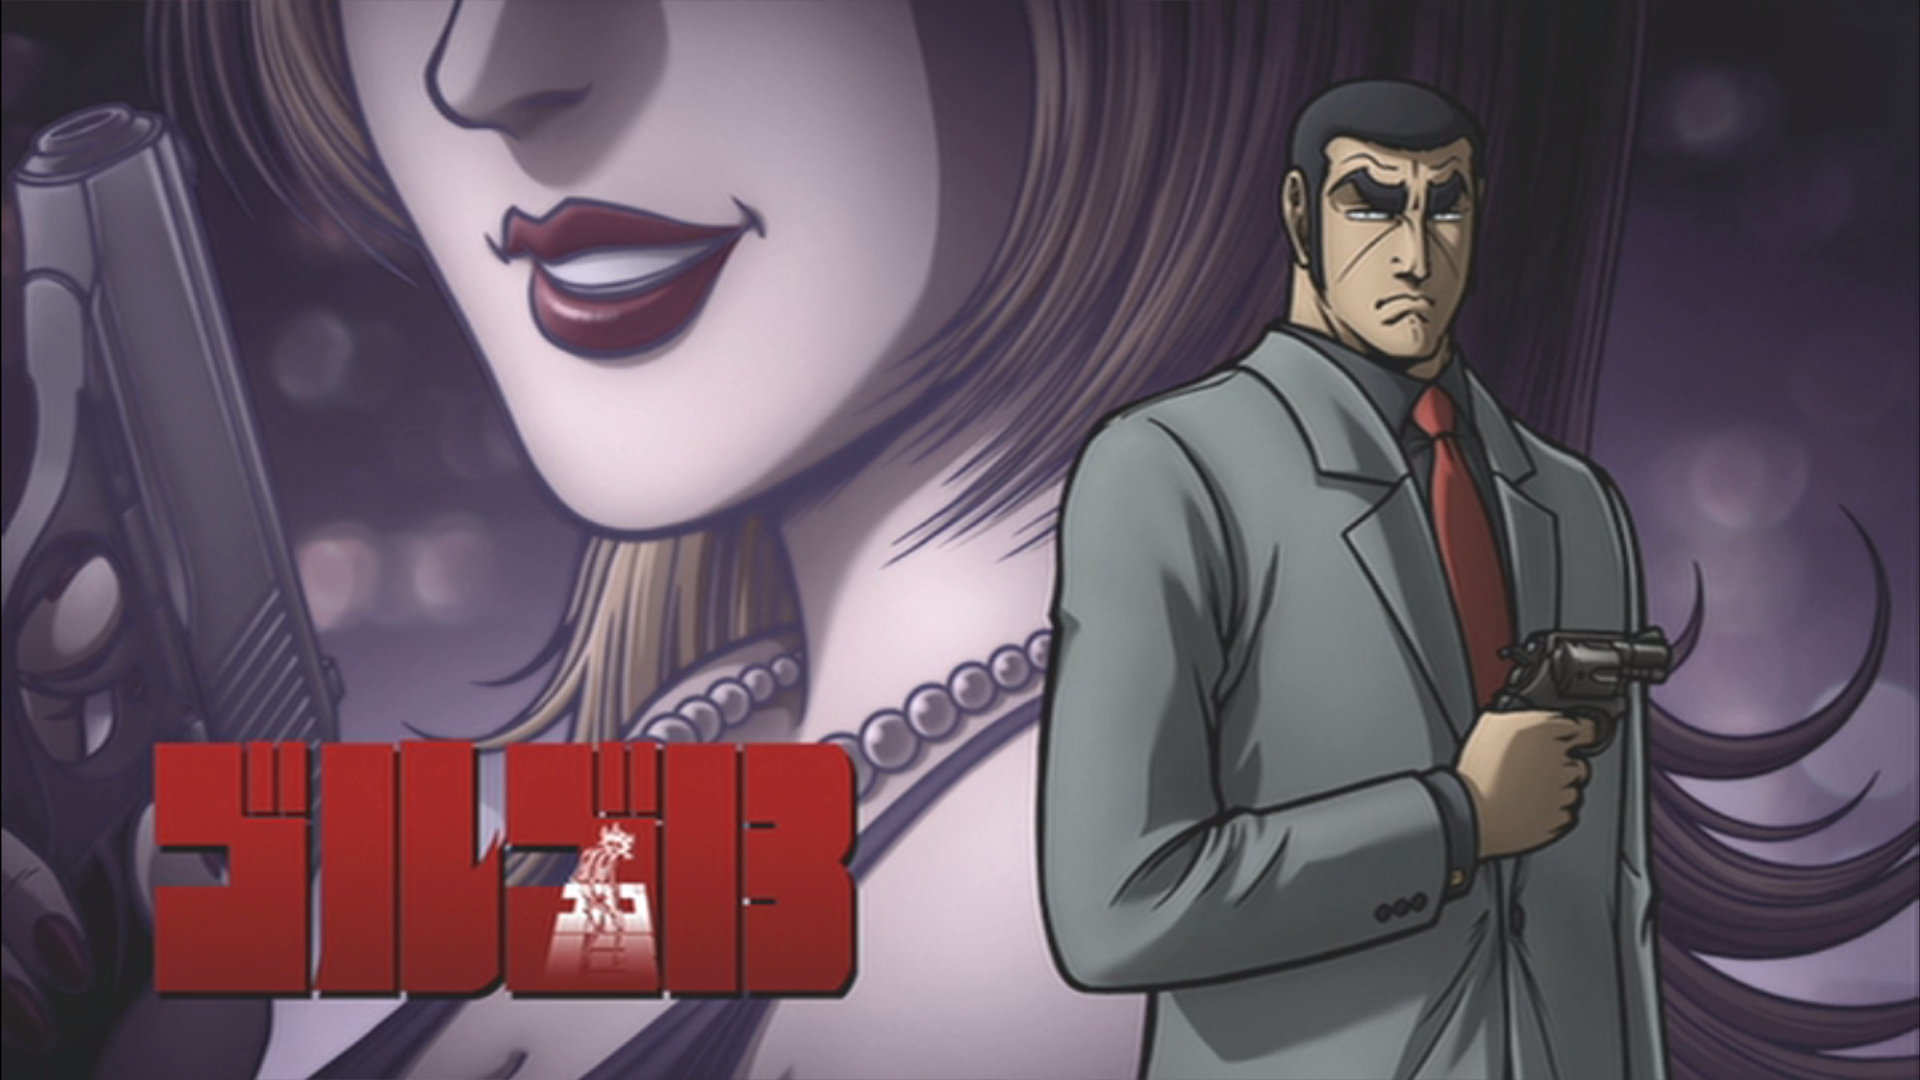 Free Golgo 13 high quality wallpaper ID:144503 for full hd 1920x1080 desktop